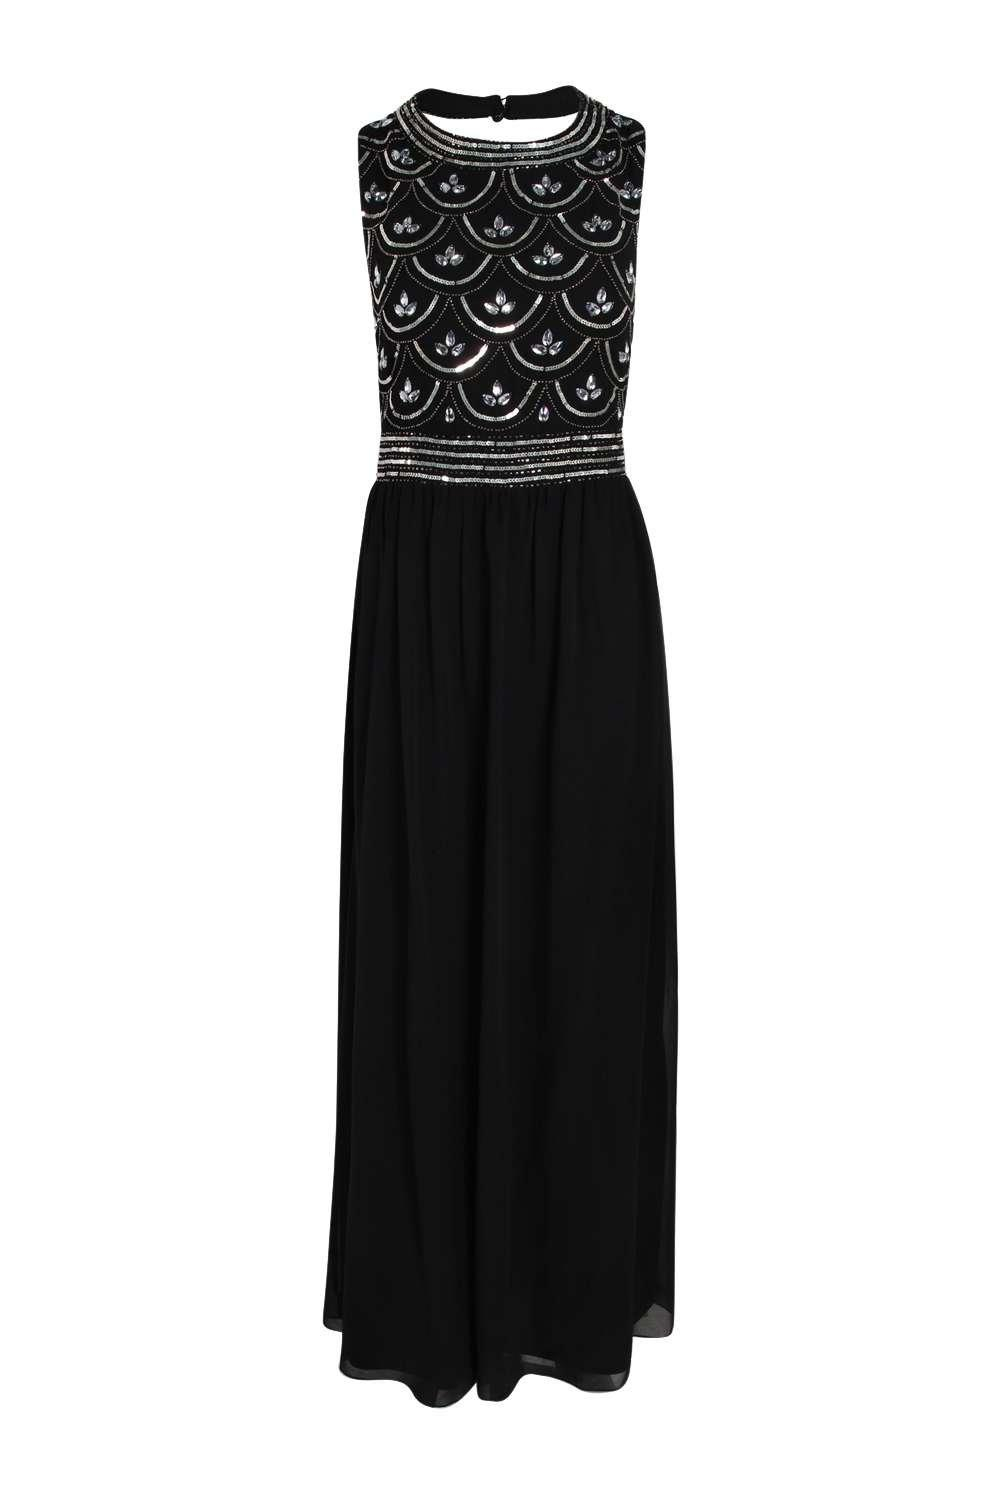 Boohoo Boutique Crina Embellished Top Chiffon Maxi Dress in Black